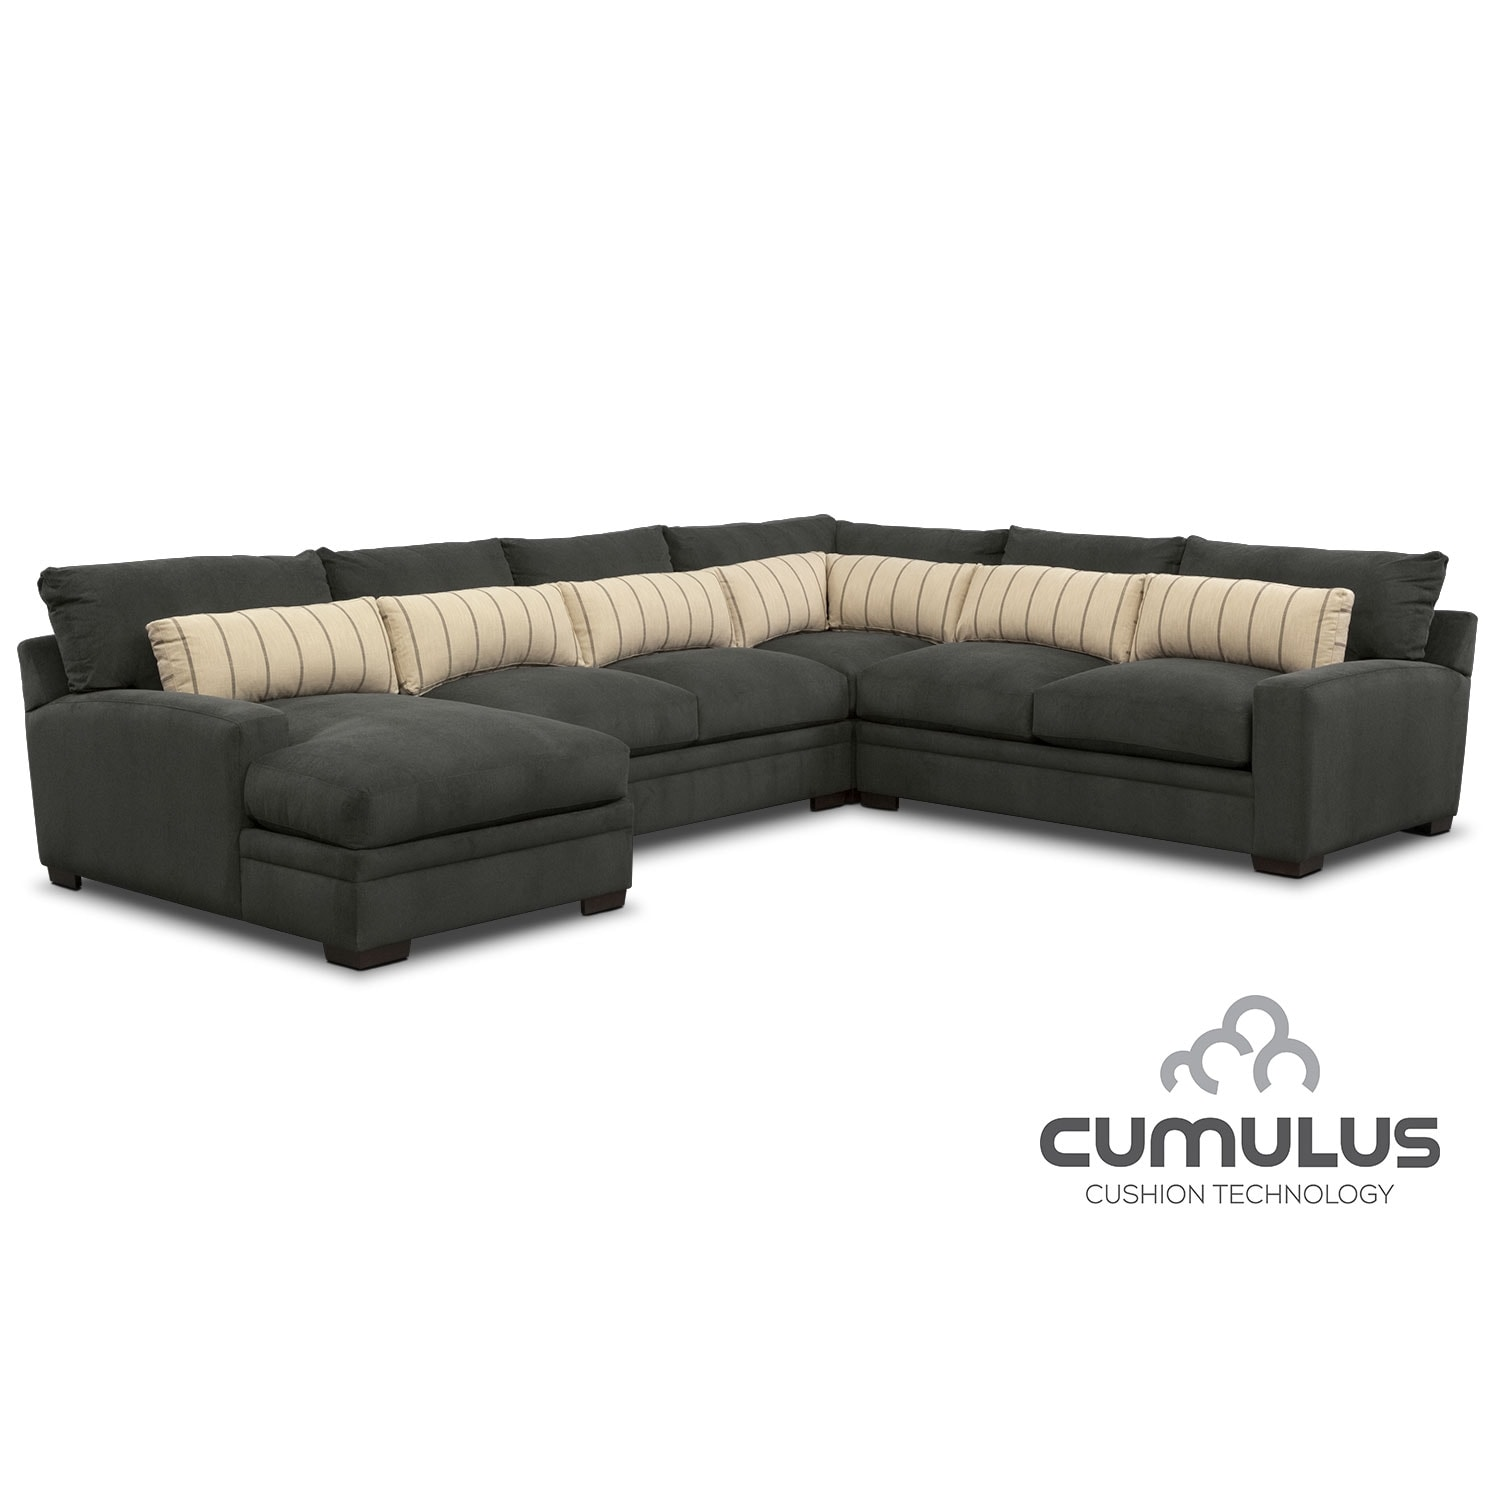 Ii 2 pc sectional and swivel chair american signature furniture - Ventura 4 Piece Sectional With Left Facing Chaise Charcoal